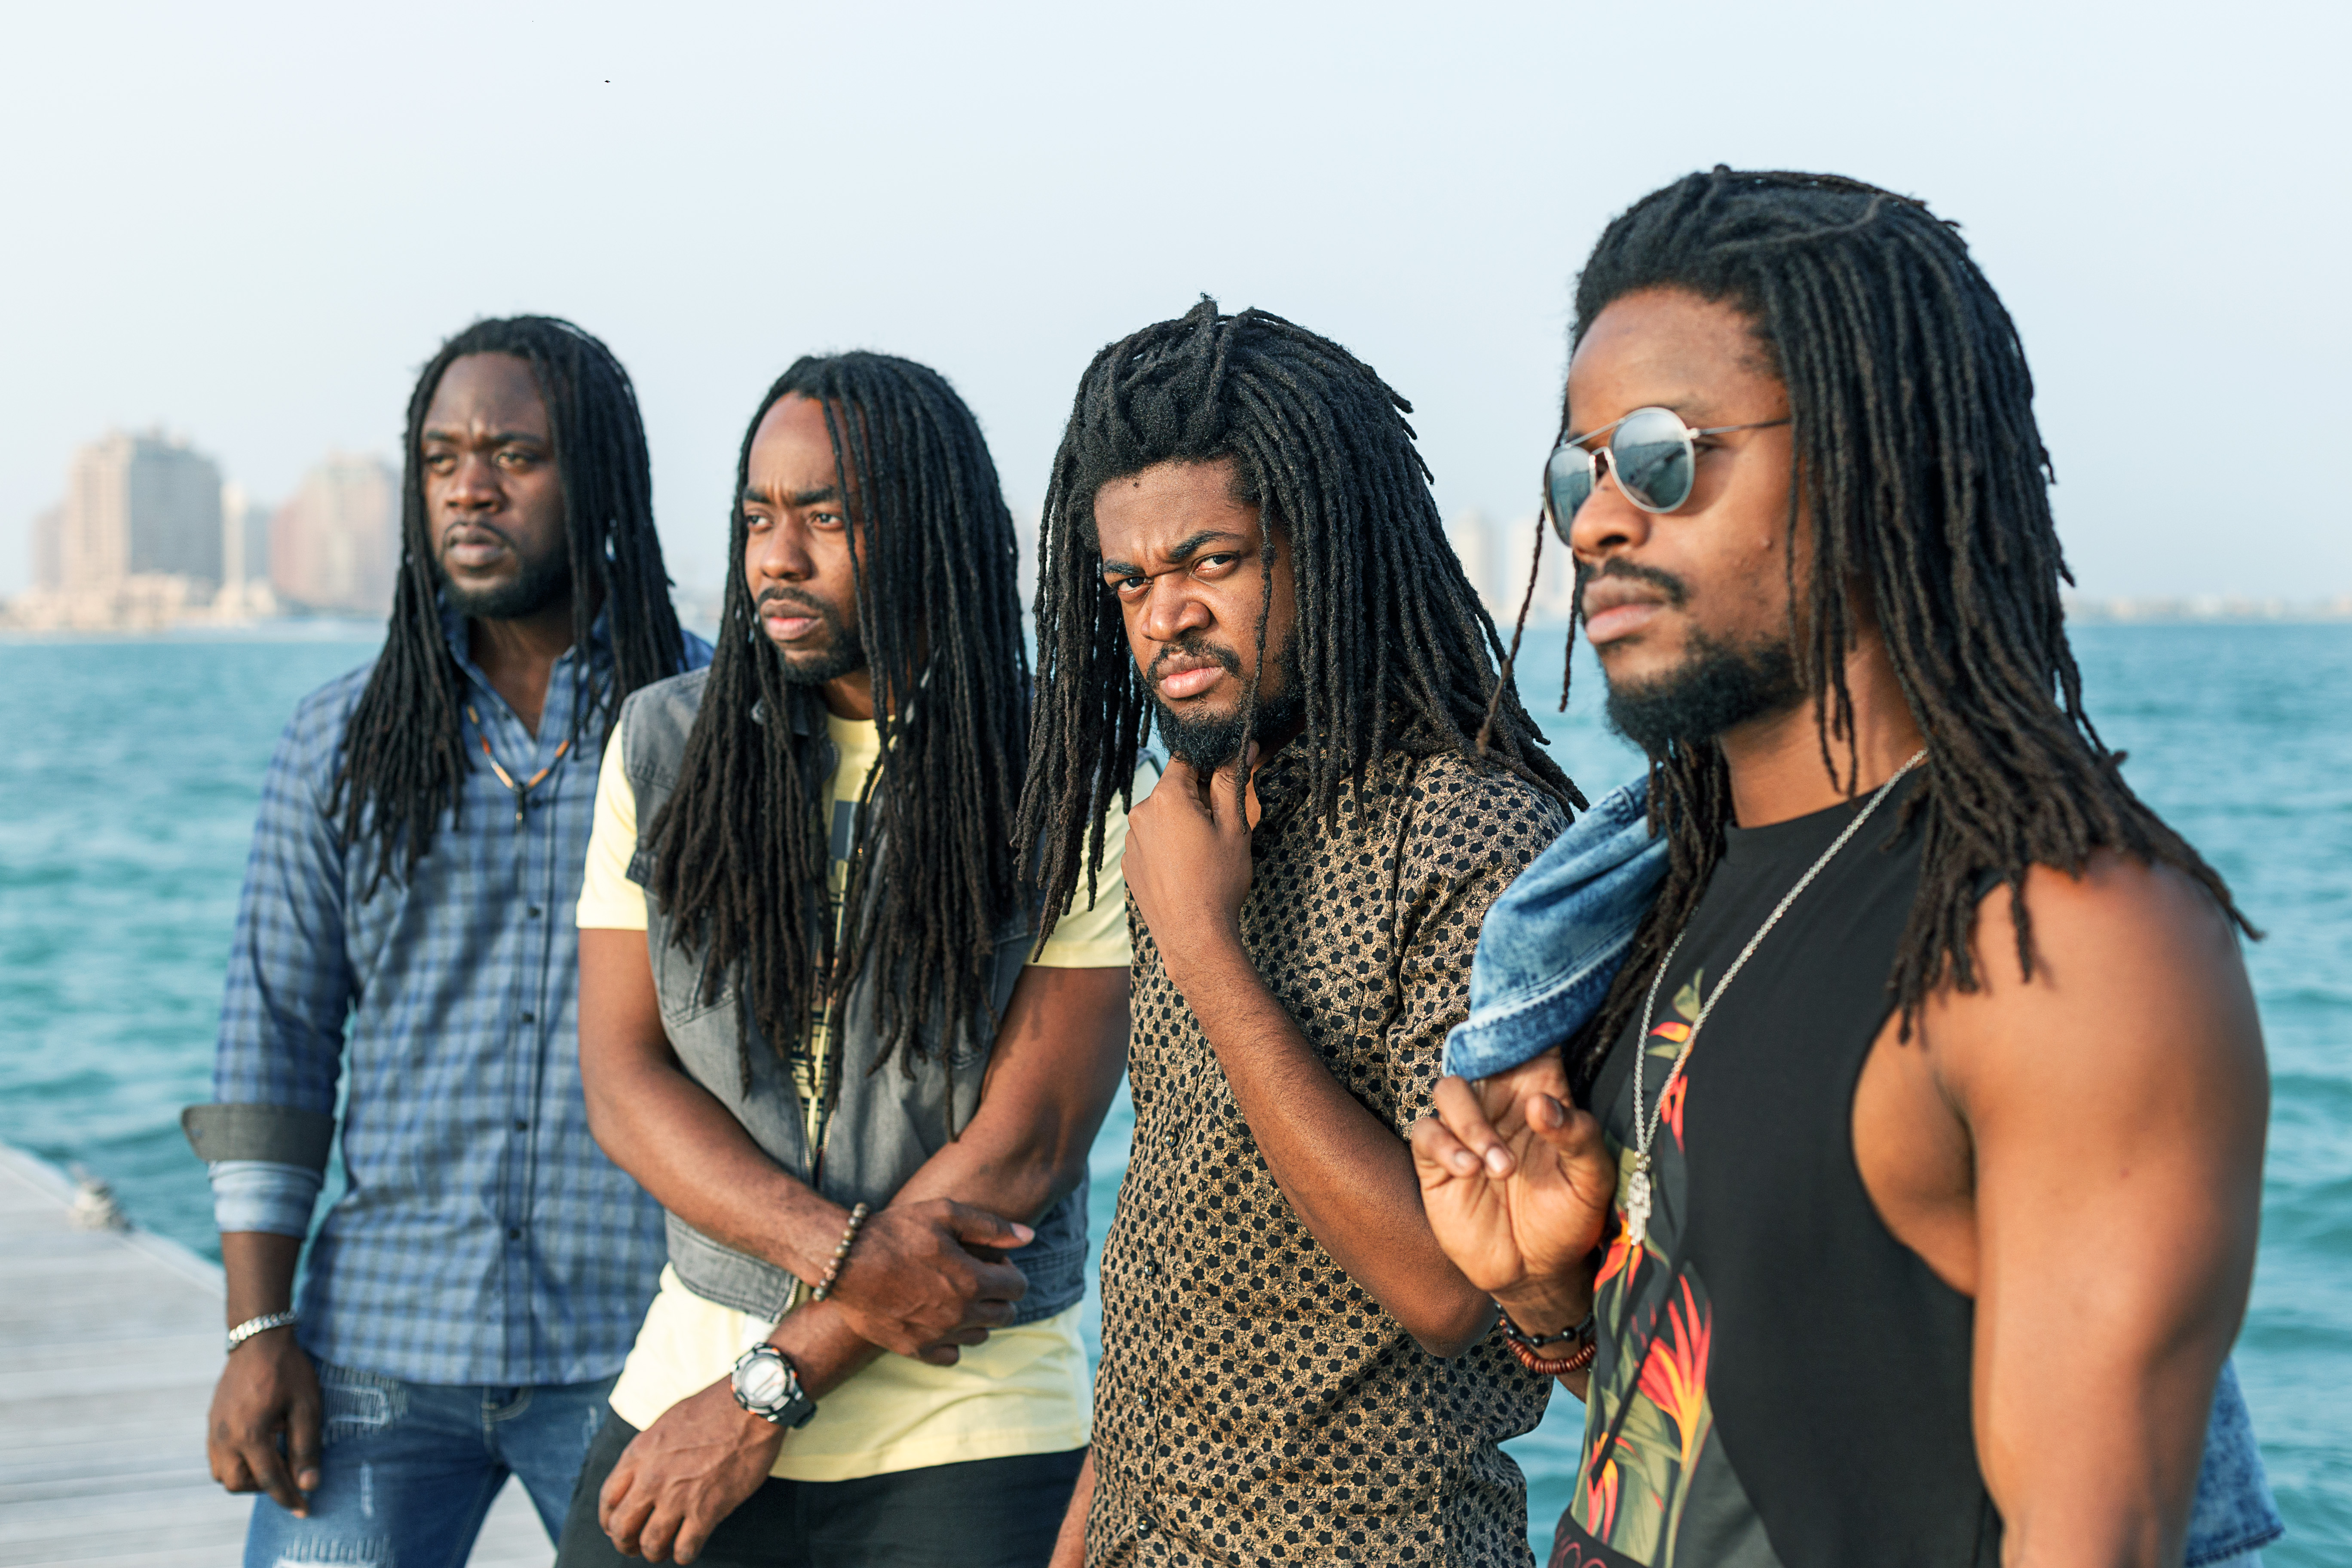 EarthKry reggae band Jamaica